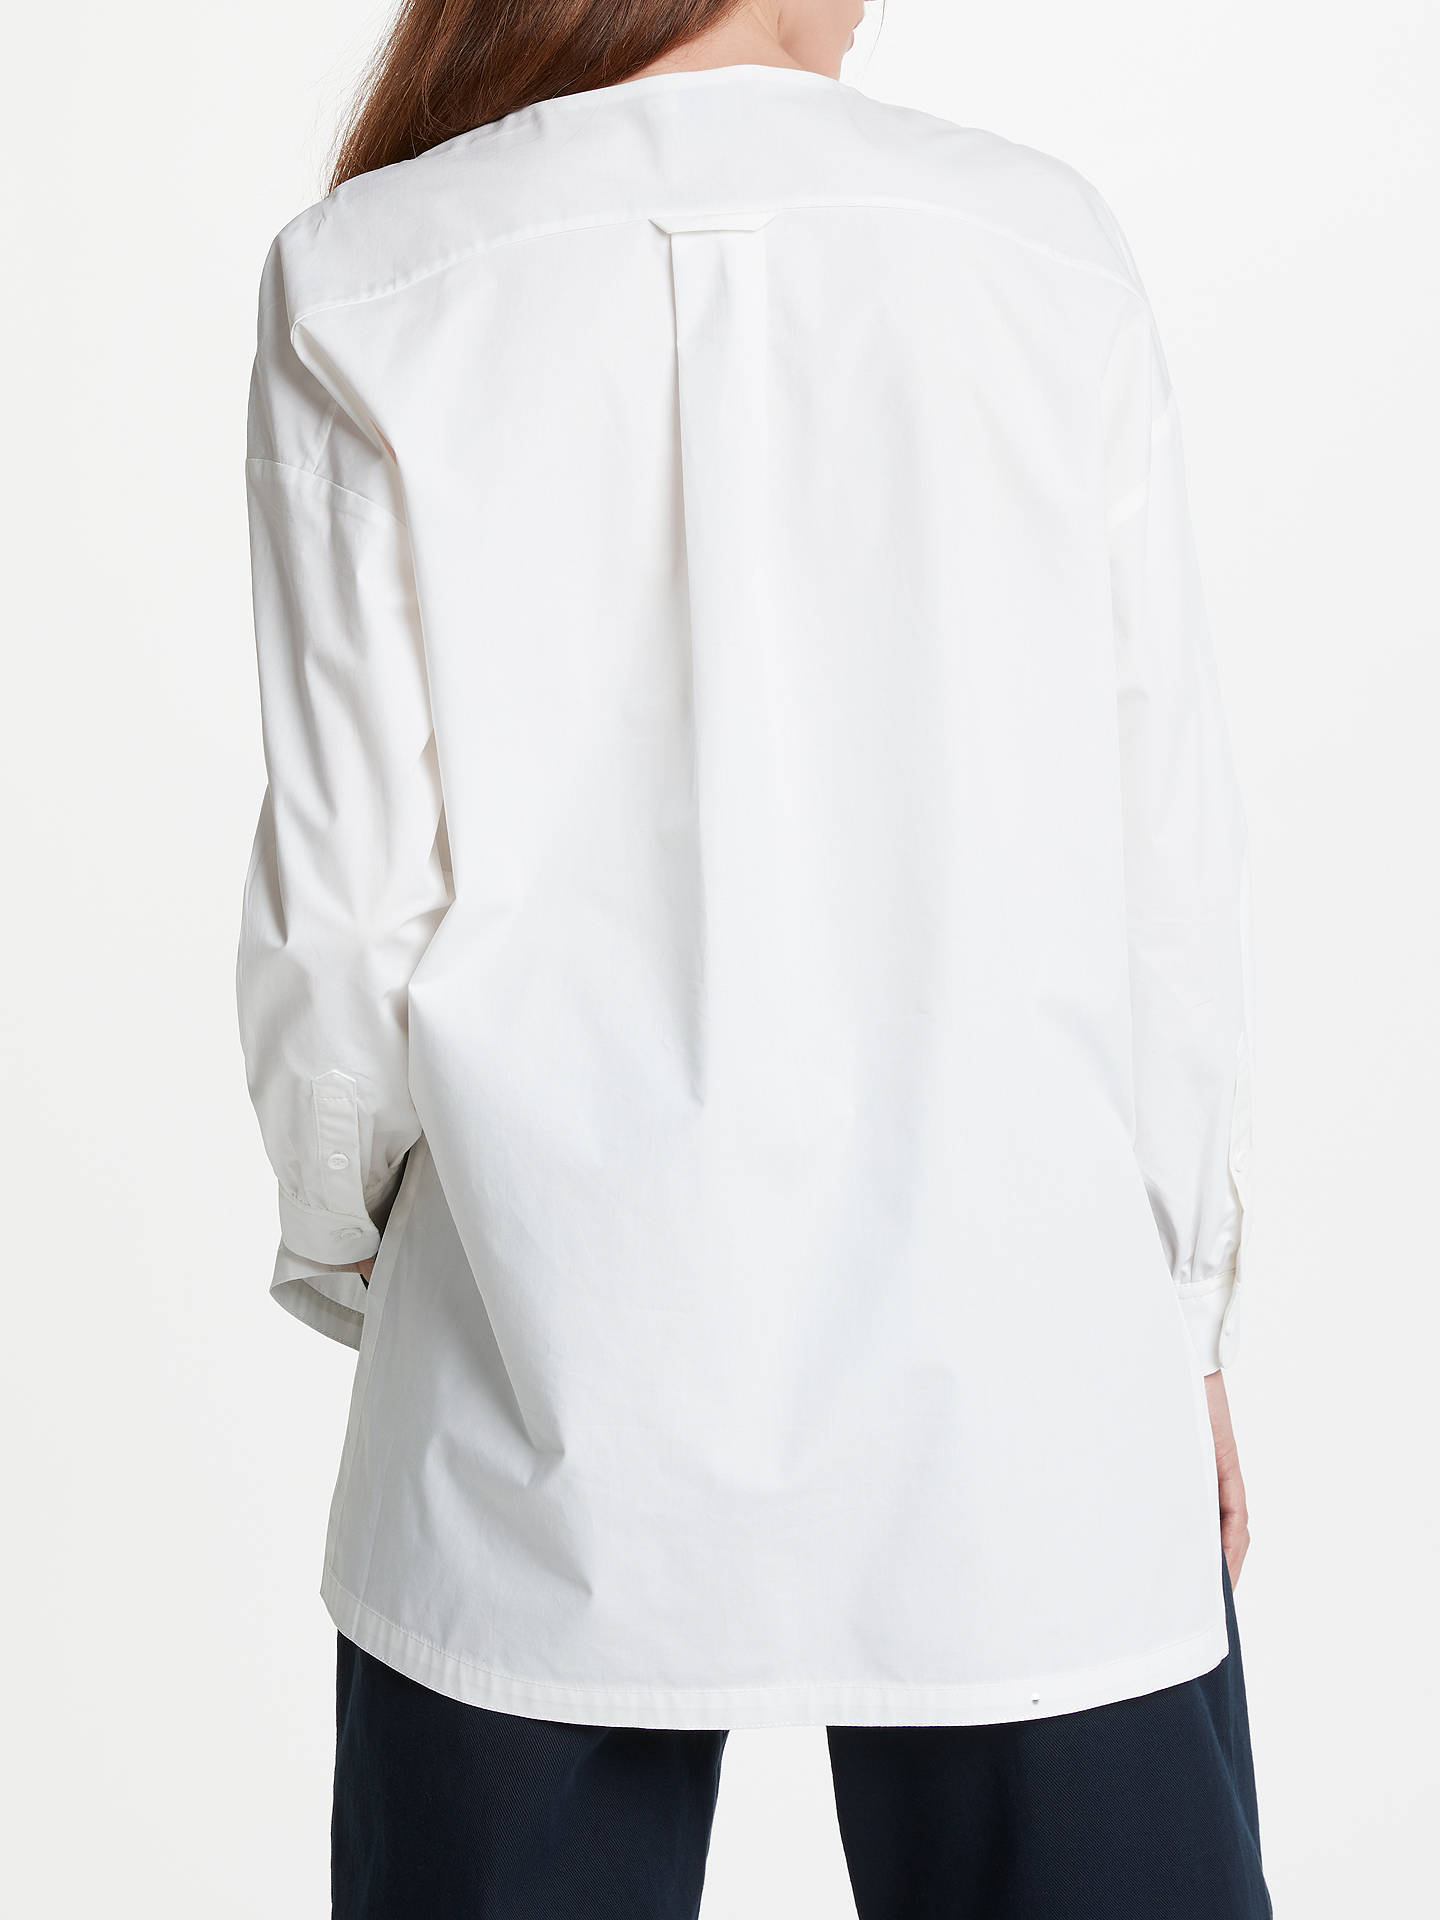 BuyKin Bib Front Shirt, White, 14 Online at johnlewis.com